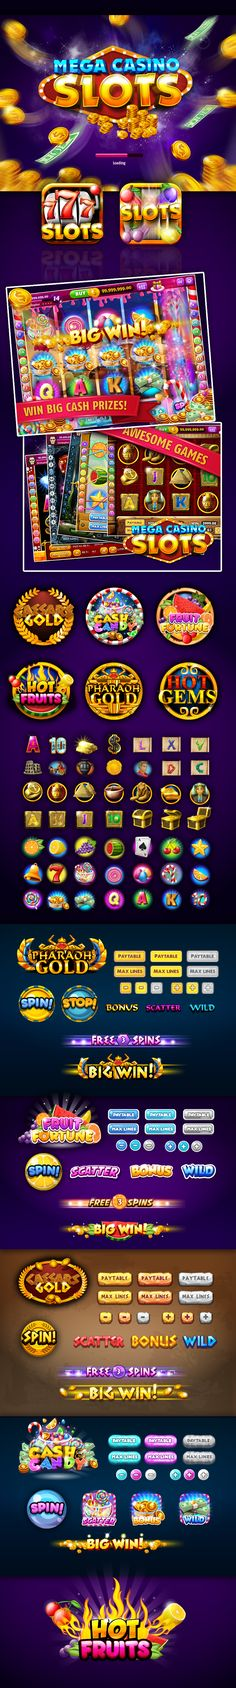 Mega Casino Slots - Game on Behance